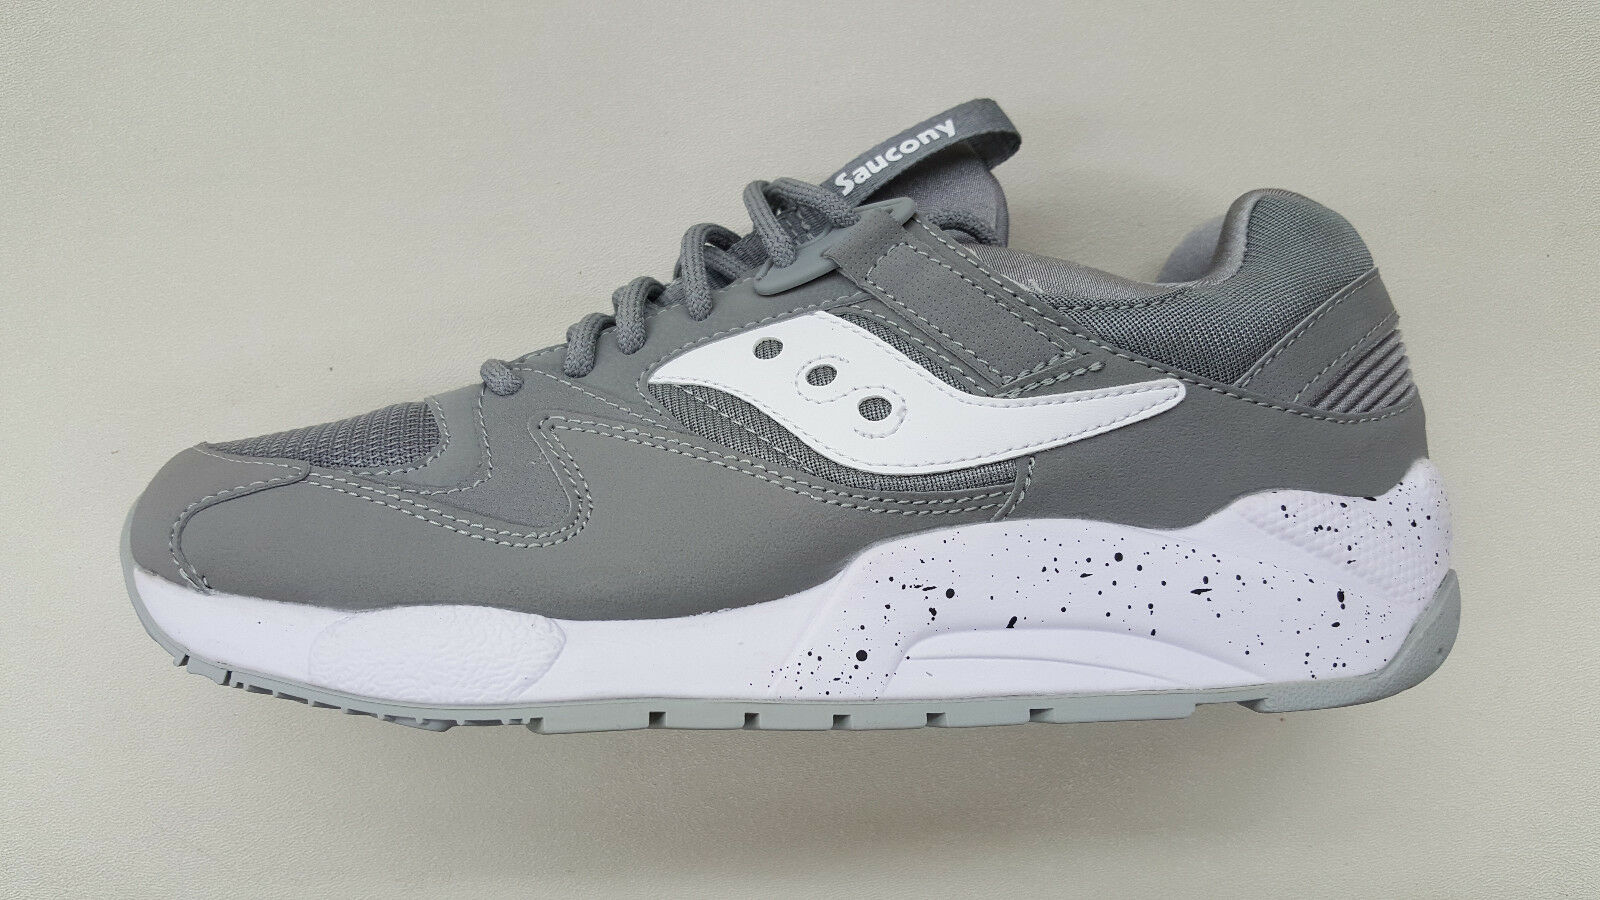 SAUCONY GRID 9000  GREY Weiß REFLECTIVE SILVER  9000 Herren SIZE SNEAKERS S70077-52 64e91a